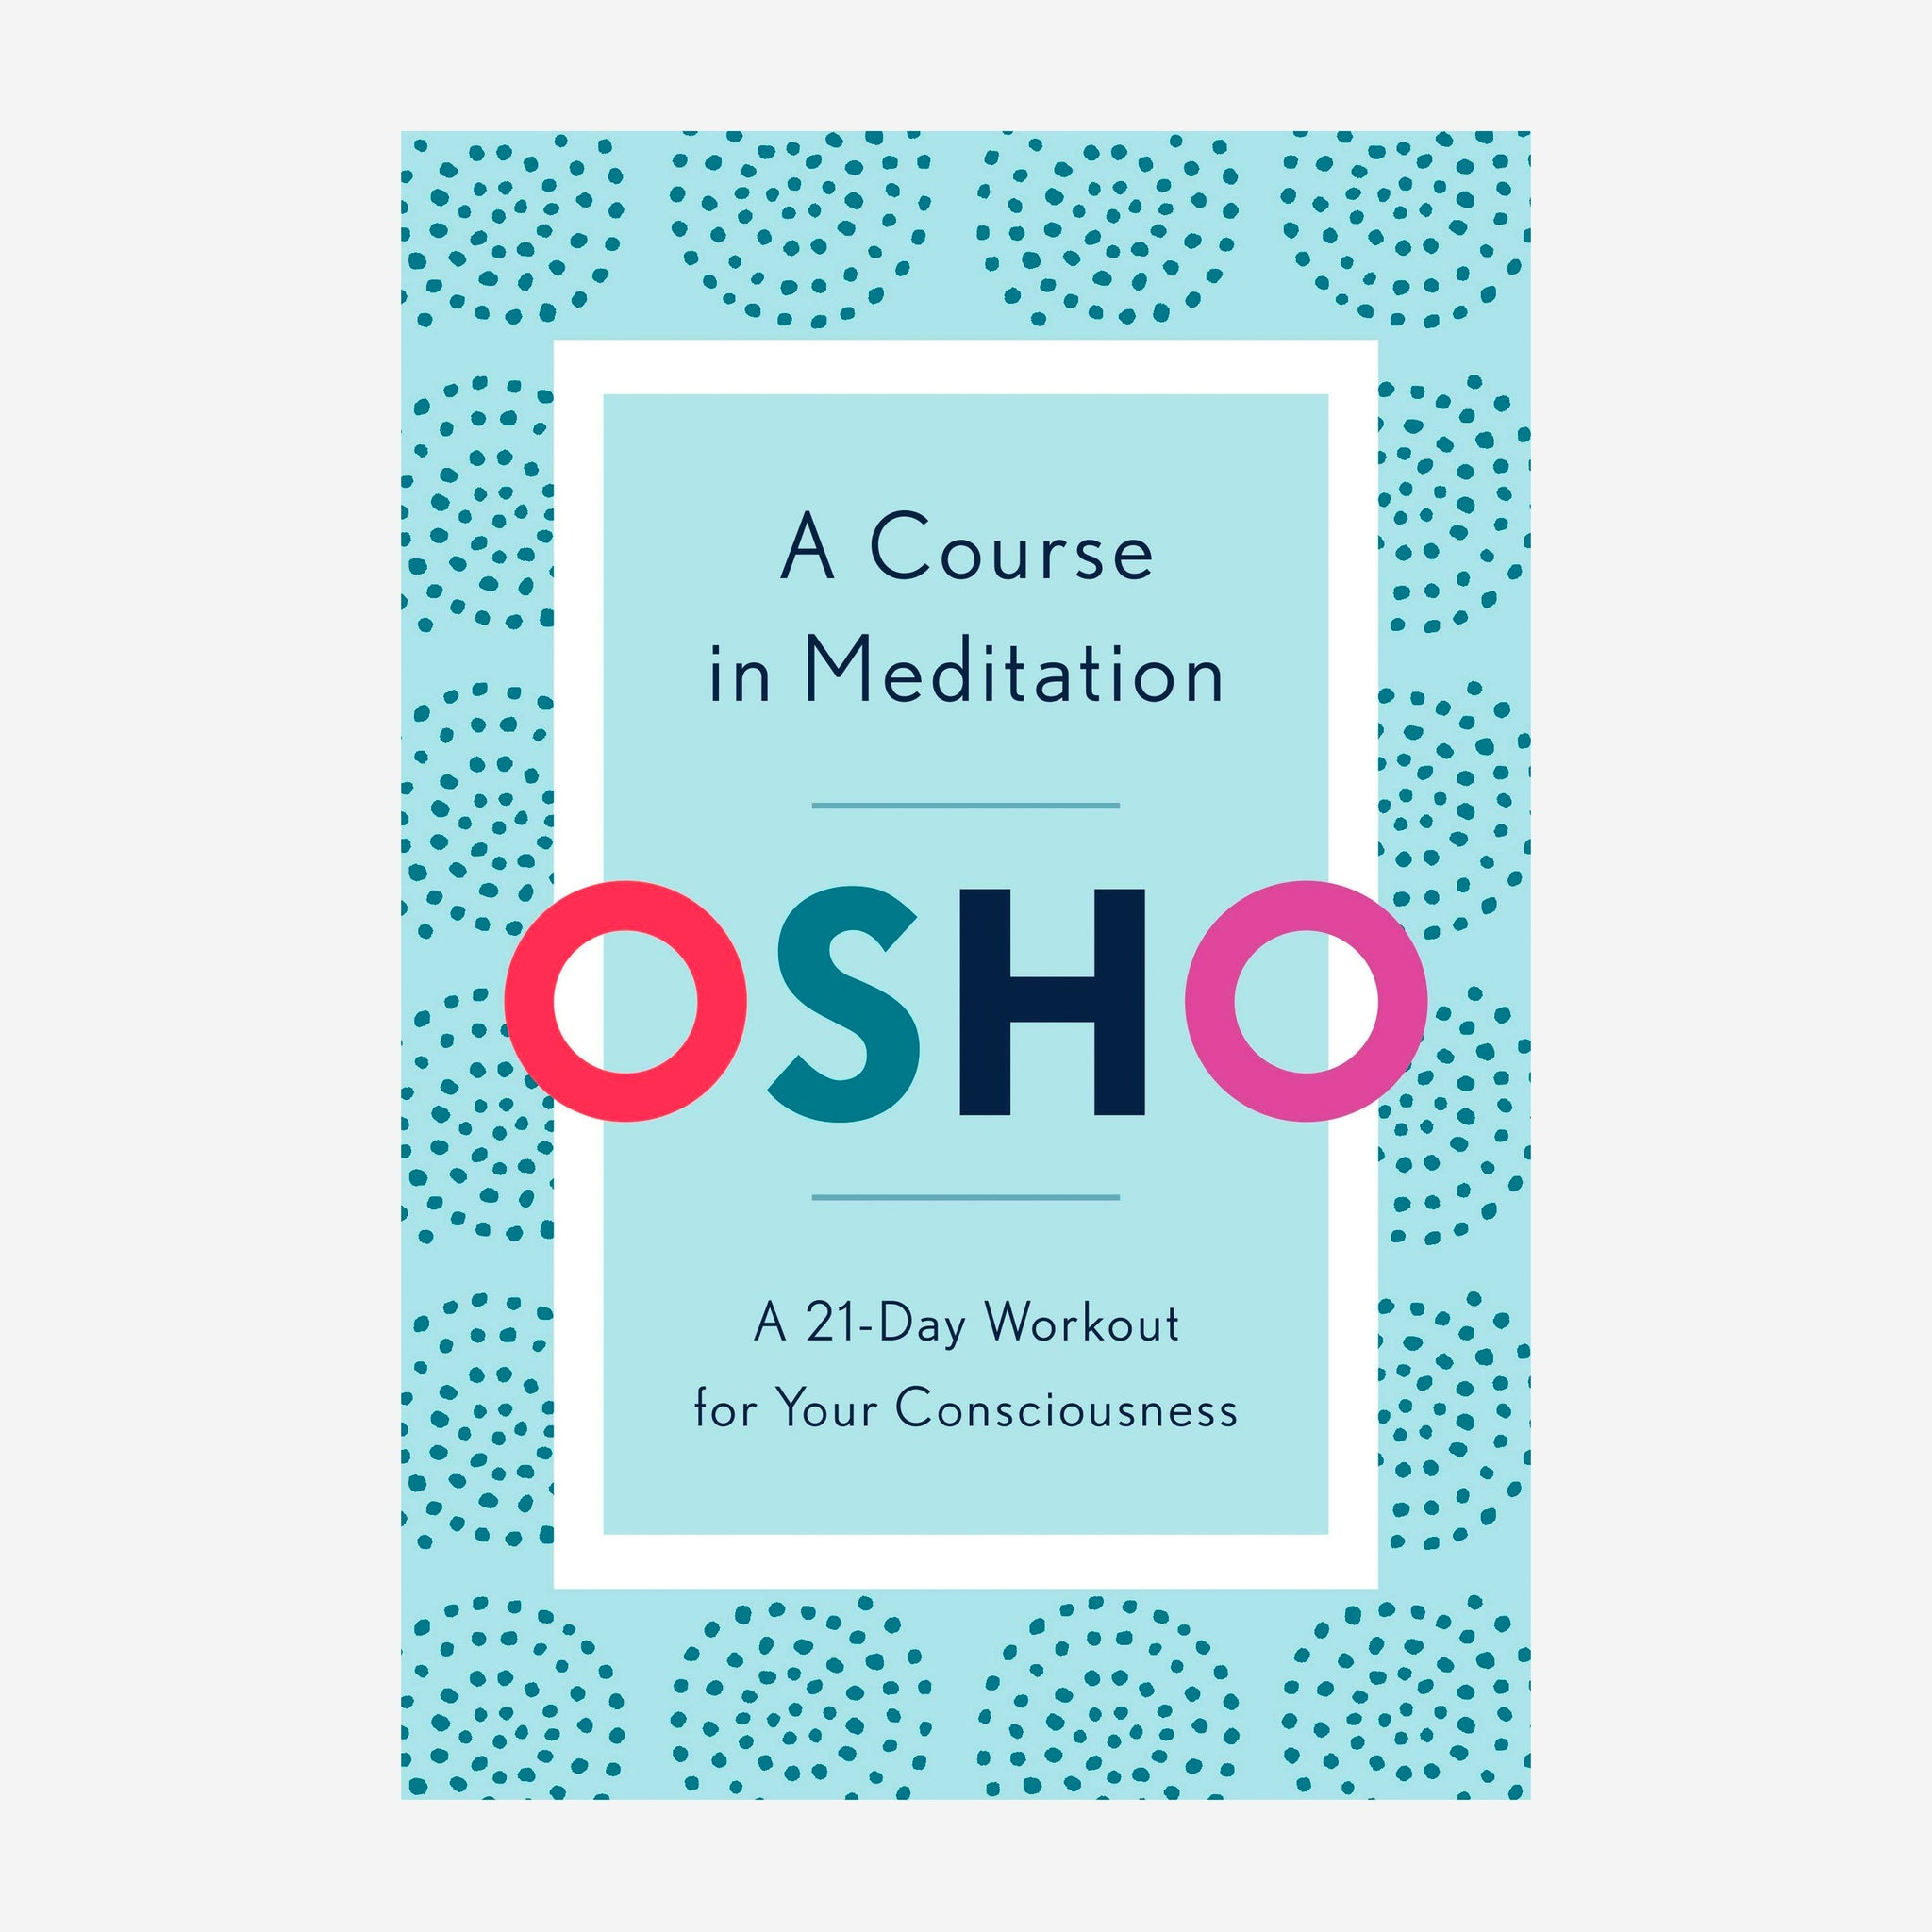 A Course in Meditation Osho